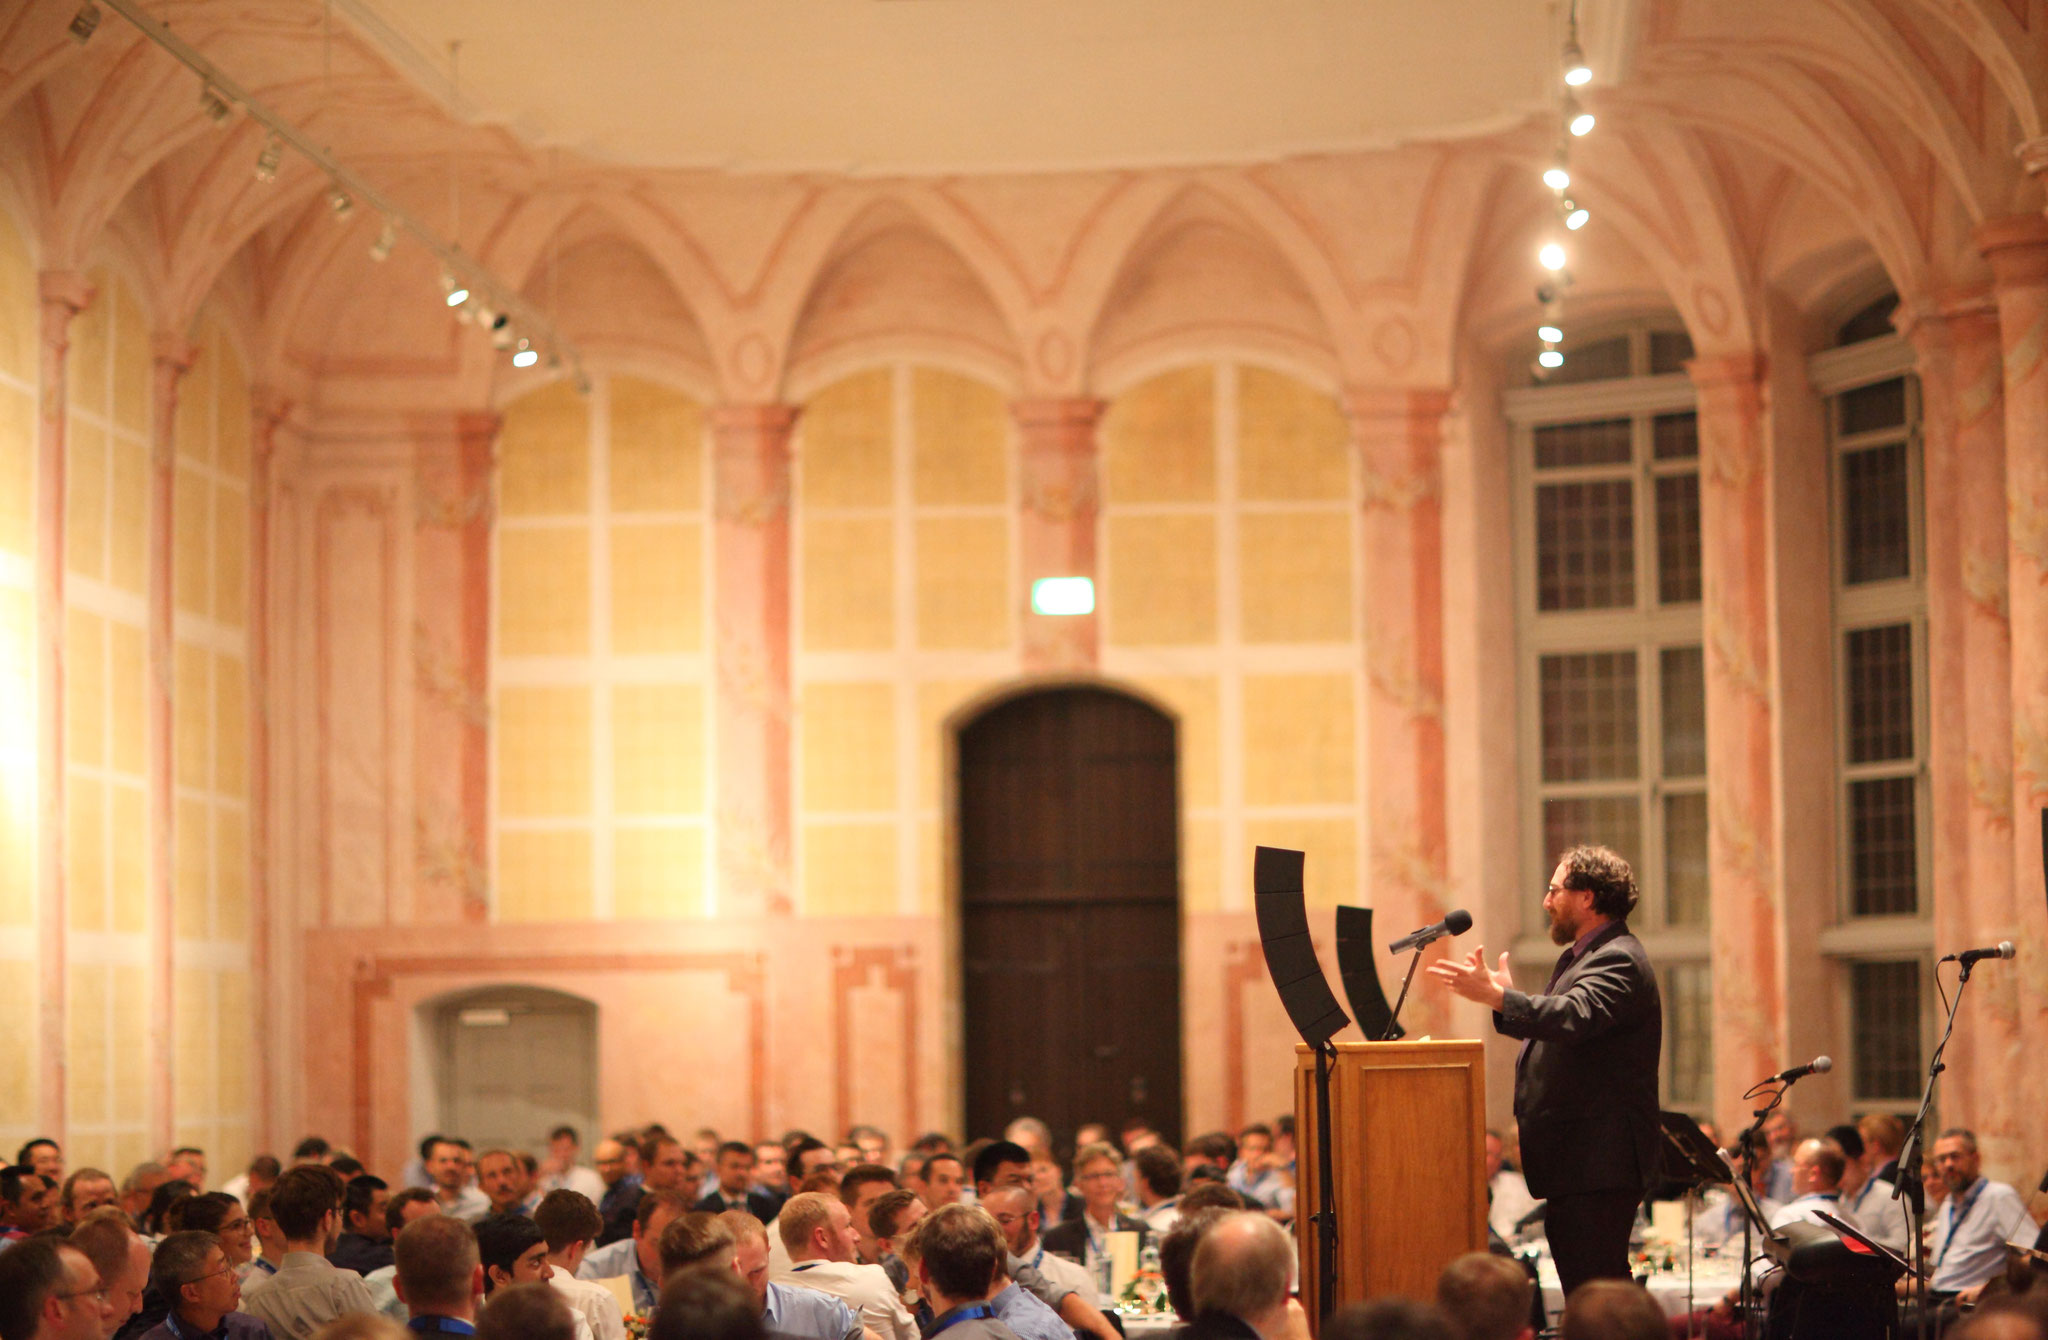 Prof. Craig B. Arnold from Princeton University, Knight of Laser Technology 2018, at the Conference Banquet in the Orangerie of Schloß Seehof near Bamberg